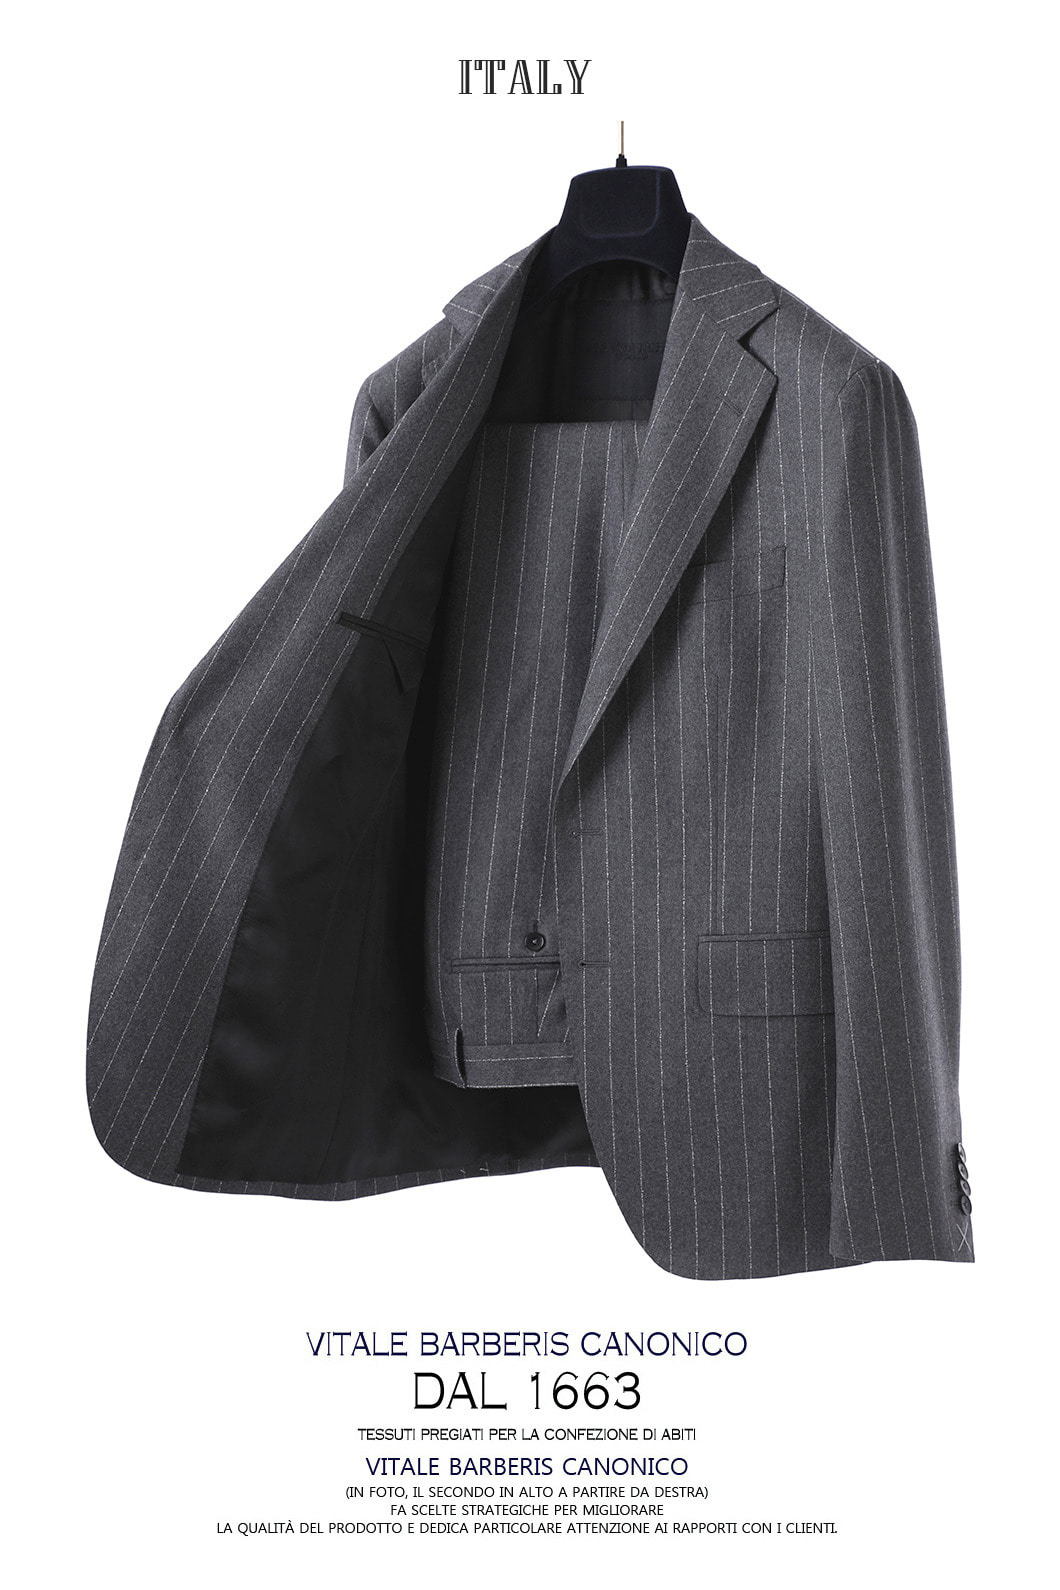 518 NOTCHED ITALY 1663 DRAGO SUIT-GRAY봄,가을용